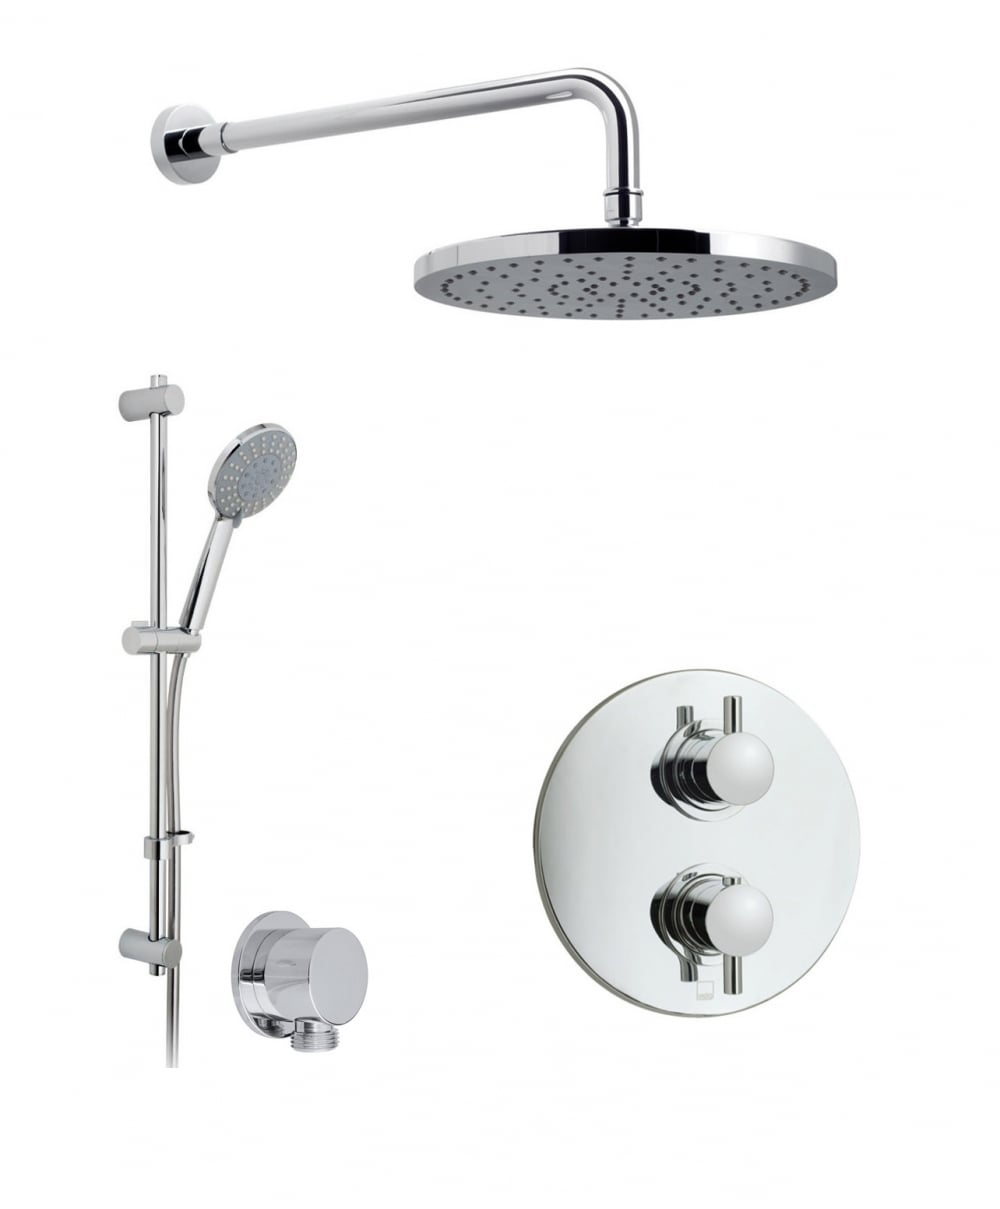 Vado Celsius Thermostatic Shower Valve With 2 Way Diverter, Wall Shower Arm  And 254mm Shower ...